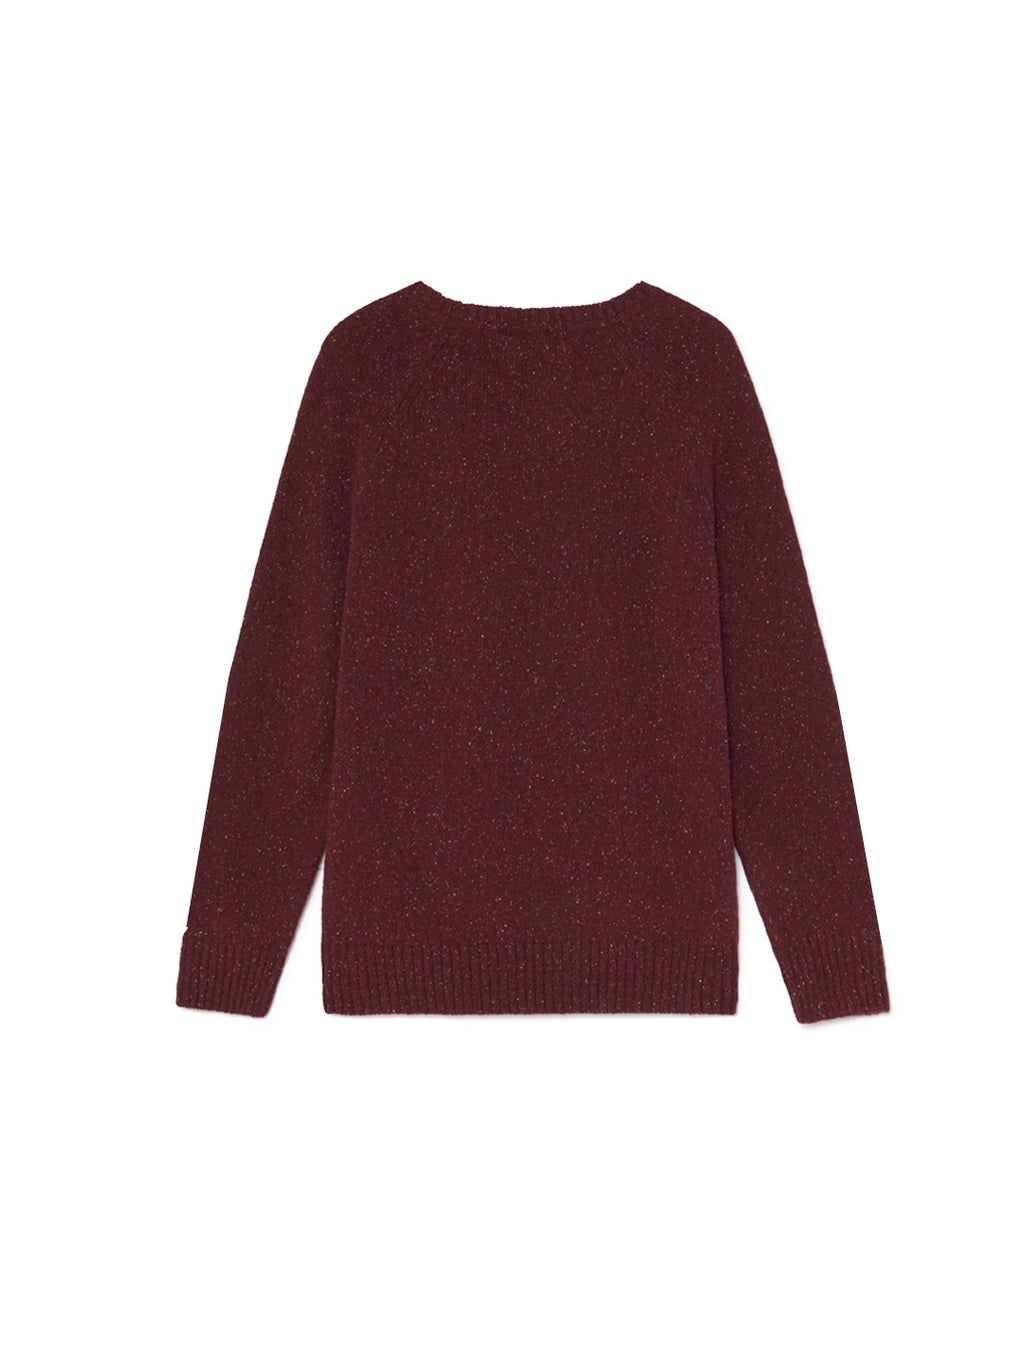 TWOTHIRDS Mens Knit: Anaa - Burgundy back